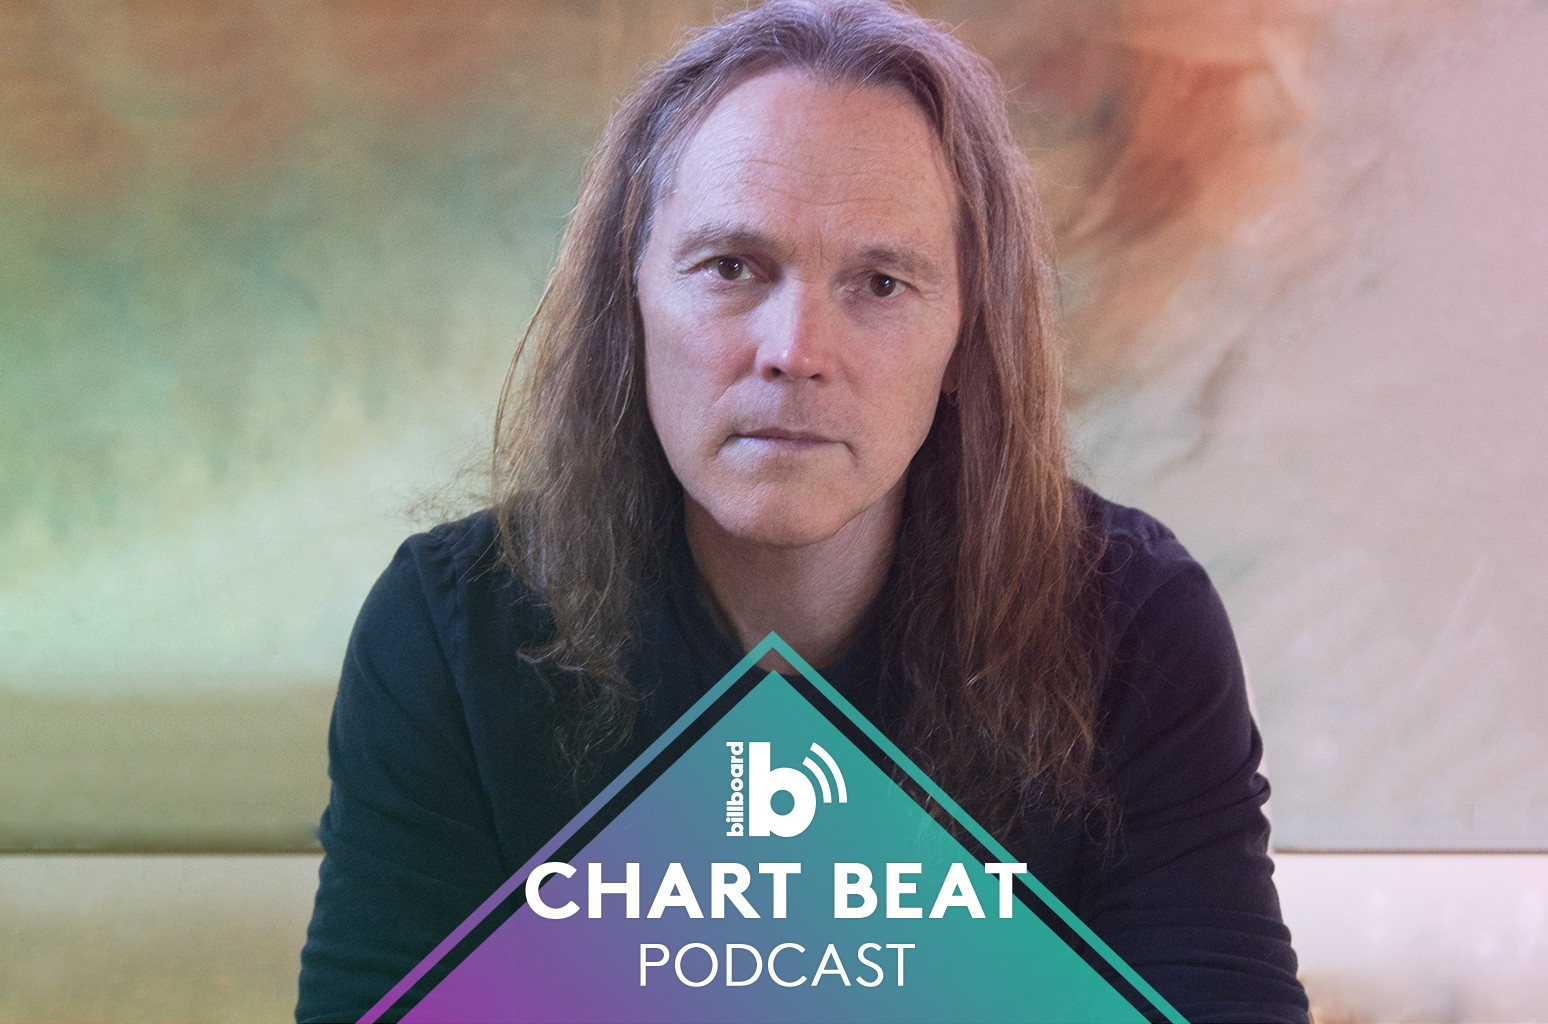 Chart Beat Podcast featuring: Timothy B. Schmit